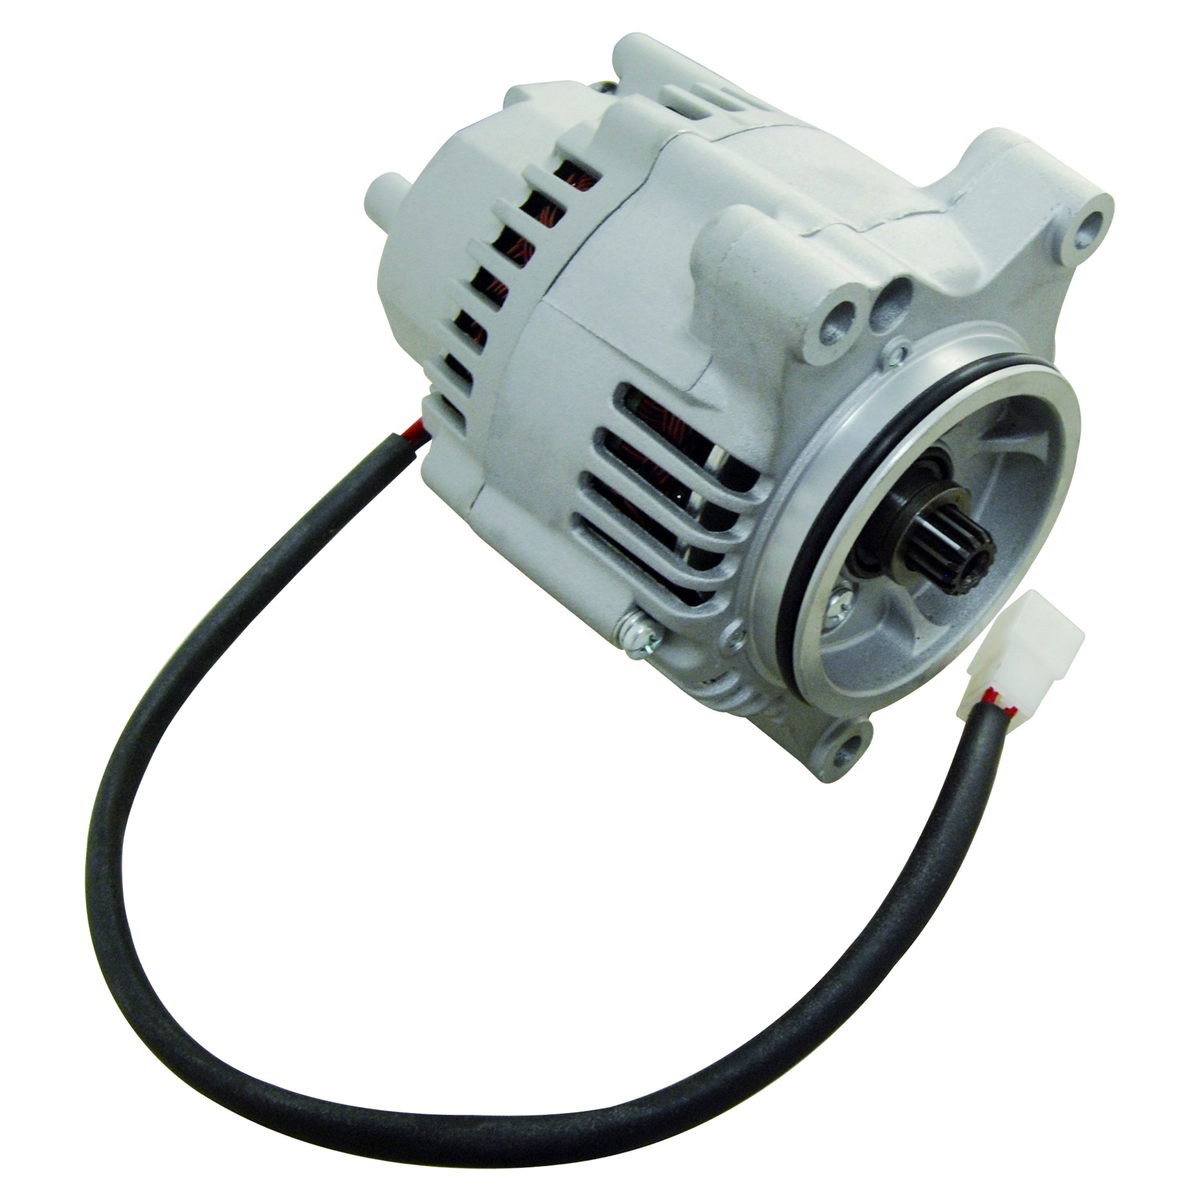 Alternator for Kawasaki ZR 1100 Zephyr 92-95, Lester 12481N, type  Mitsubishi IR/IF, 35 A/12V, Splined Shaft, replaces 210011083, 210011121,  210011123